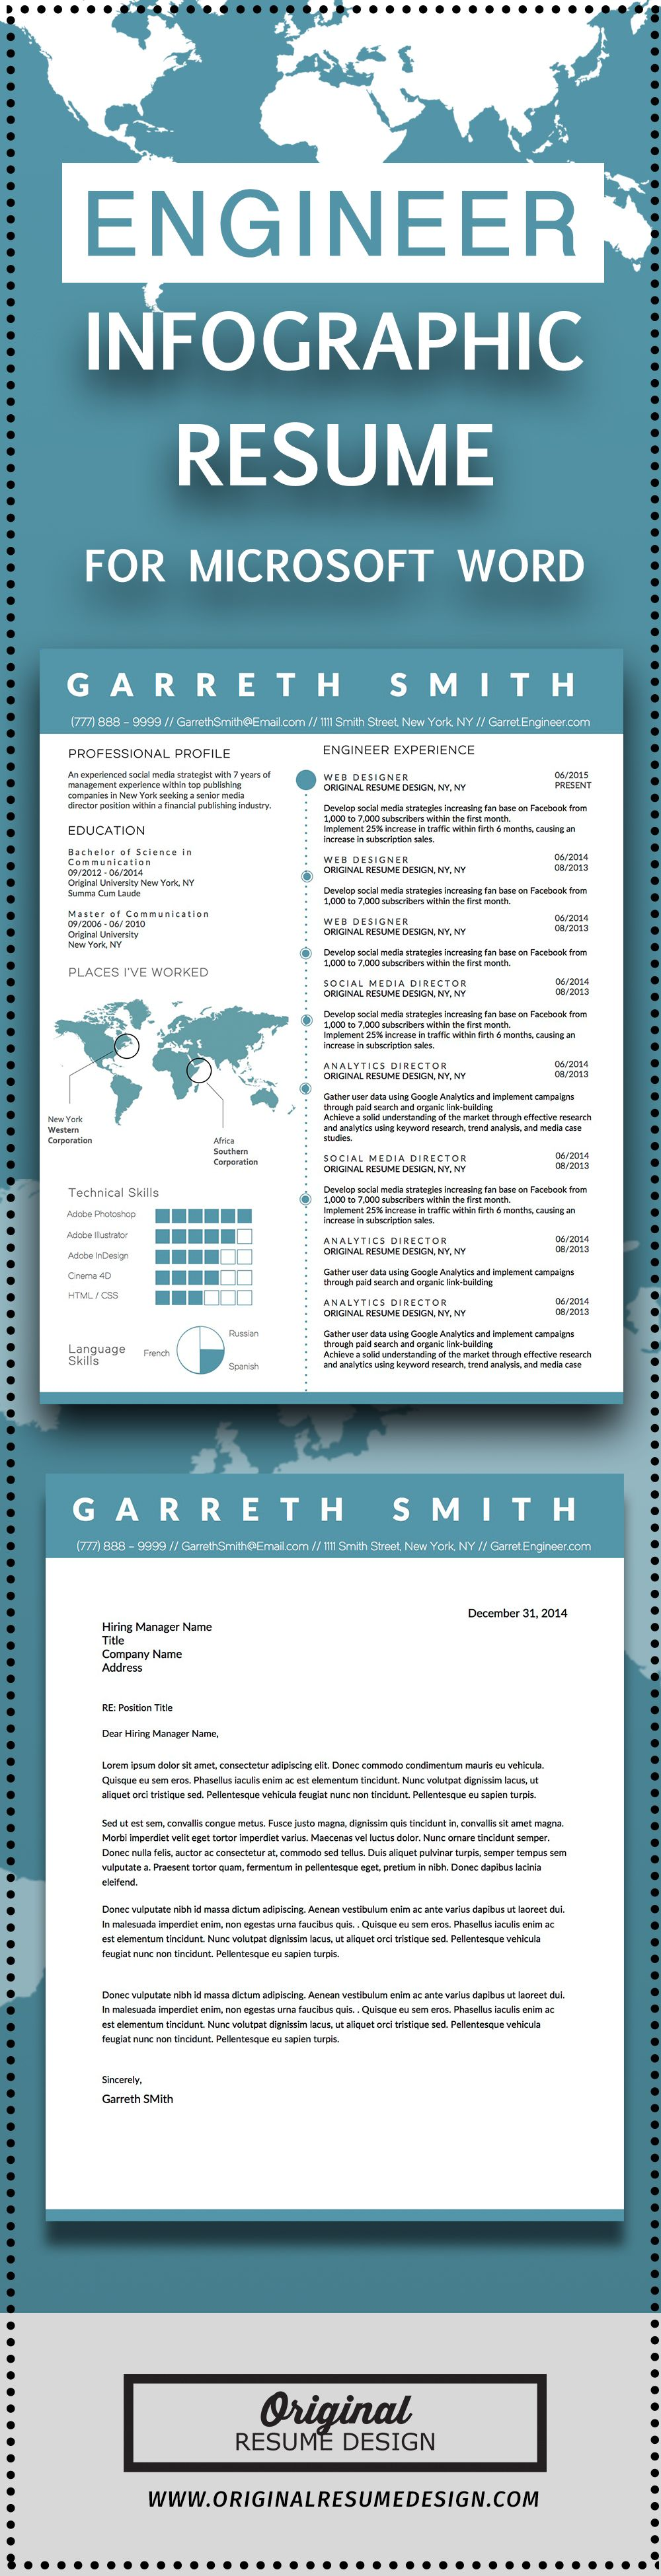 computer programs for resume%0A Creative Infographic Clean Business Resume Template for Microsoft Word   Perfect for Engineers  Software Developers